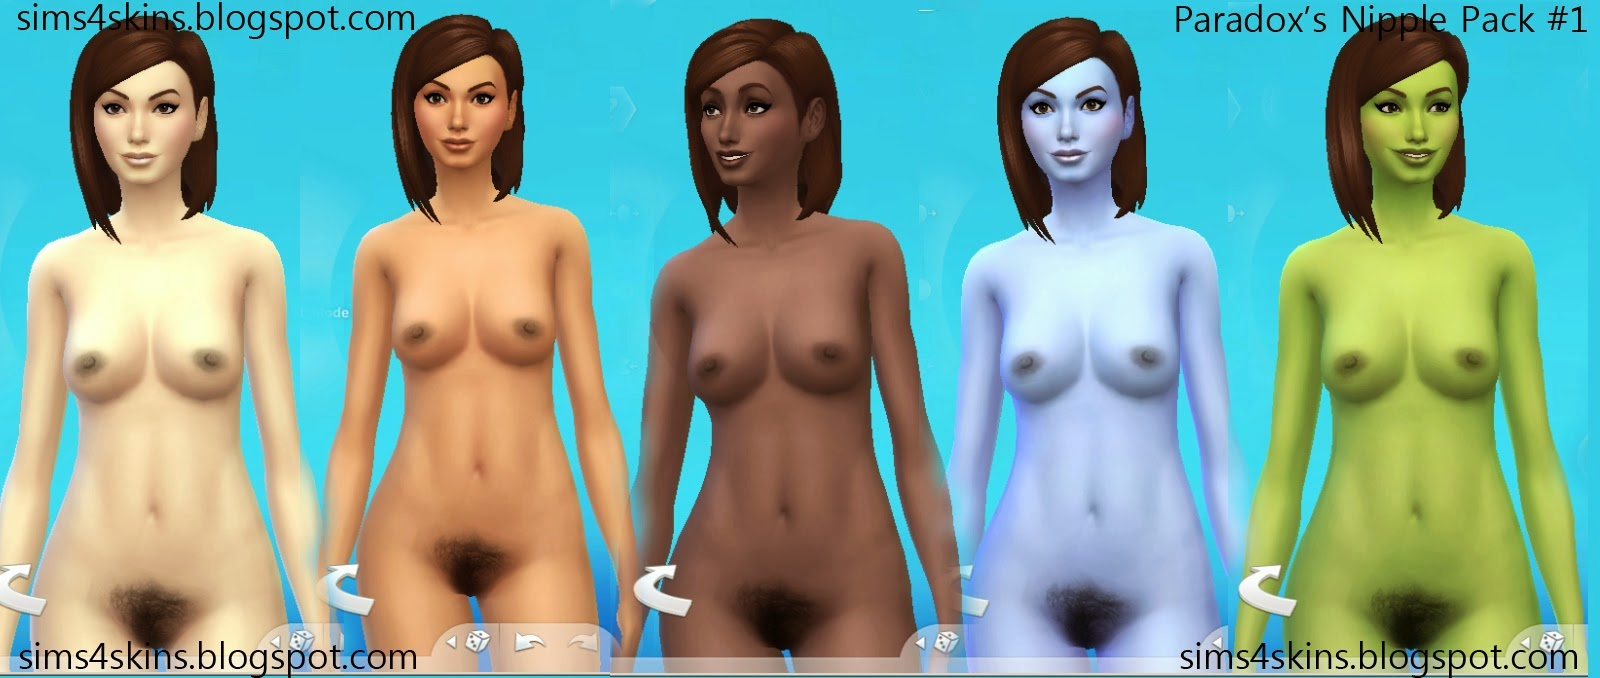 The sims 2 nude skins download hentai download